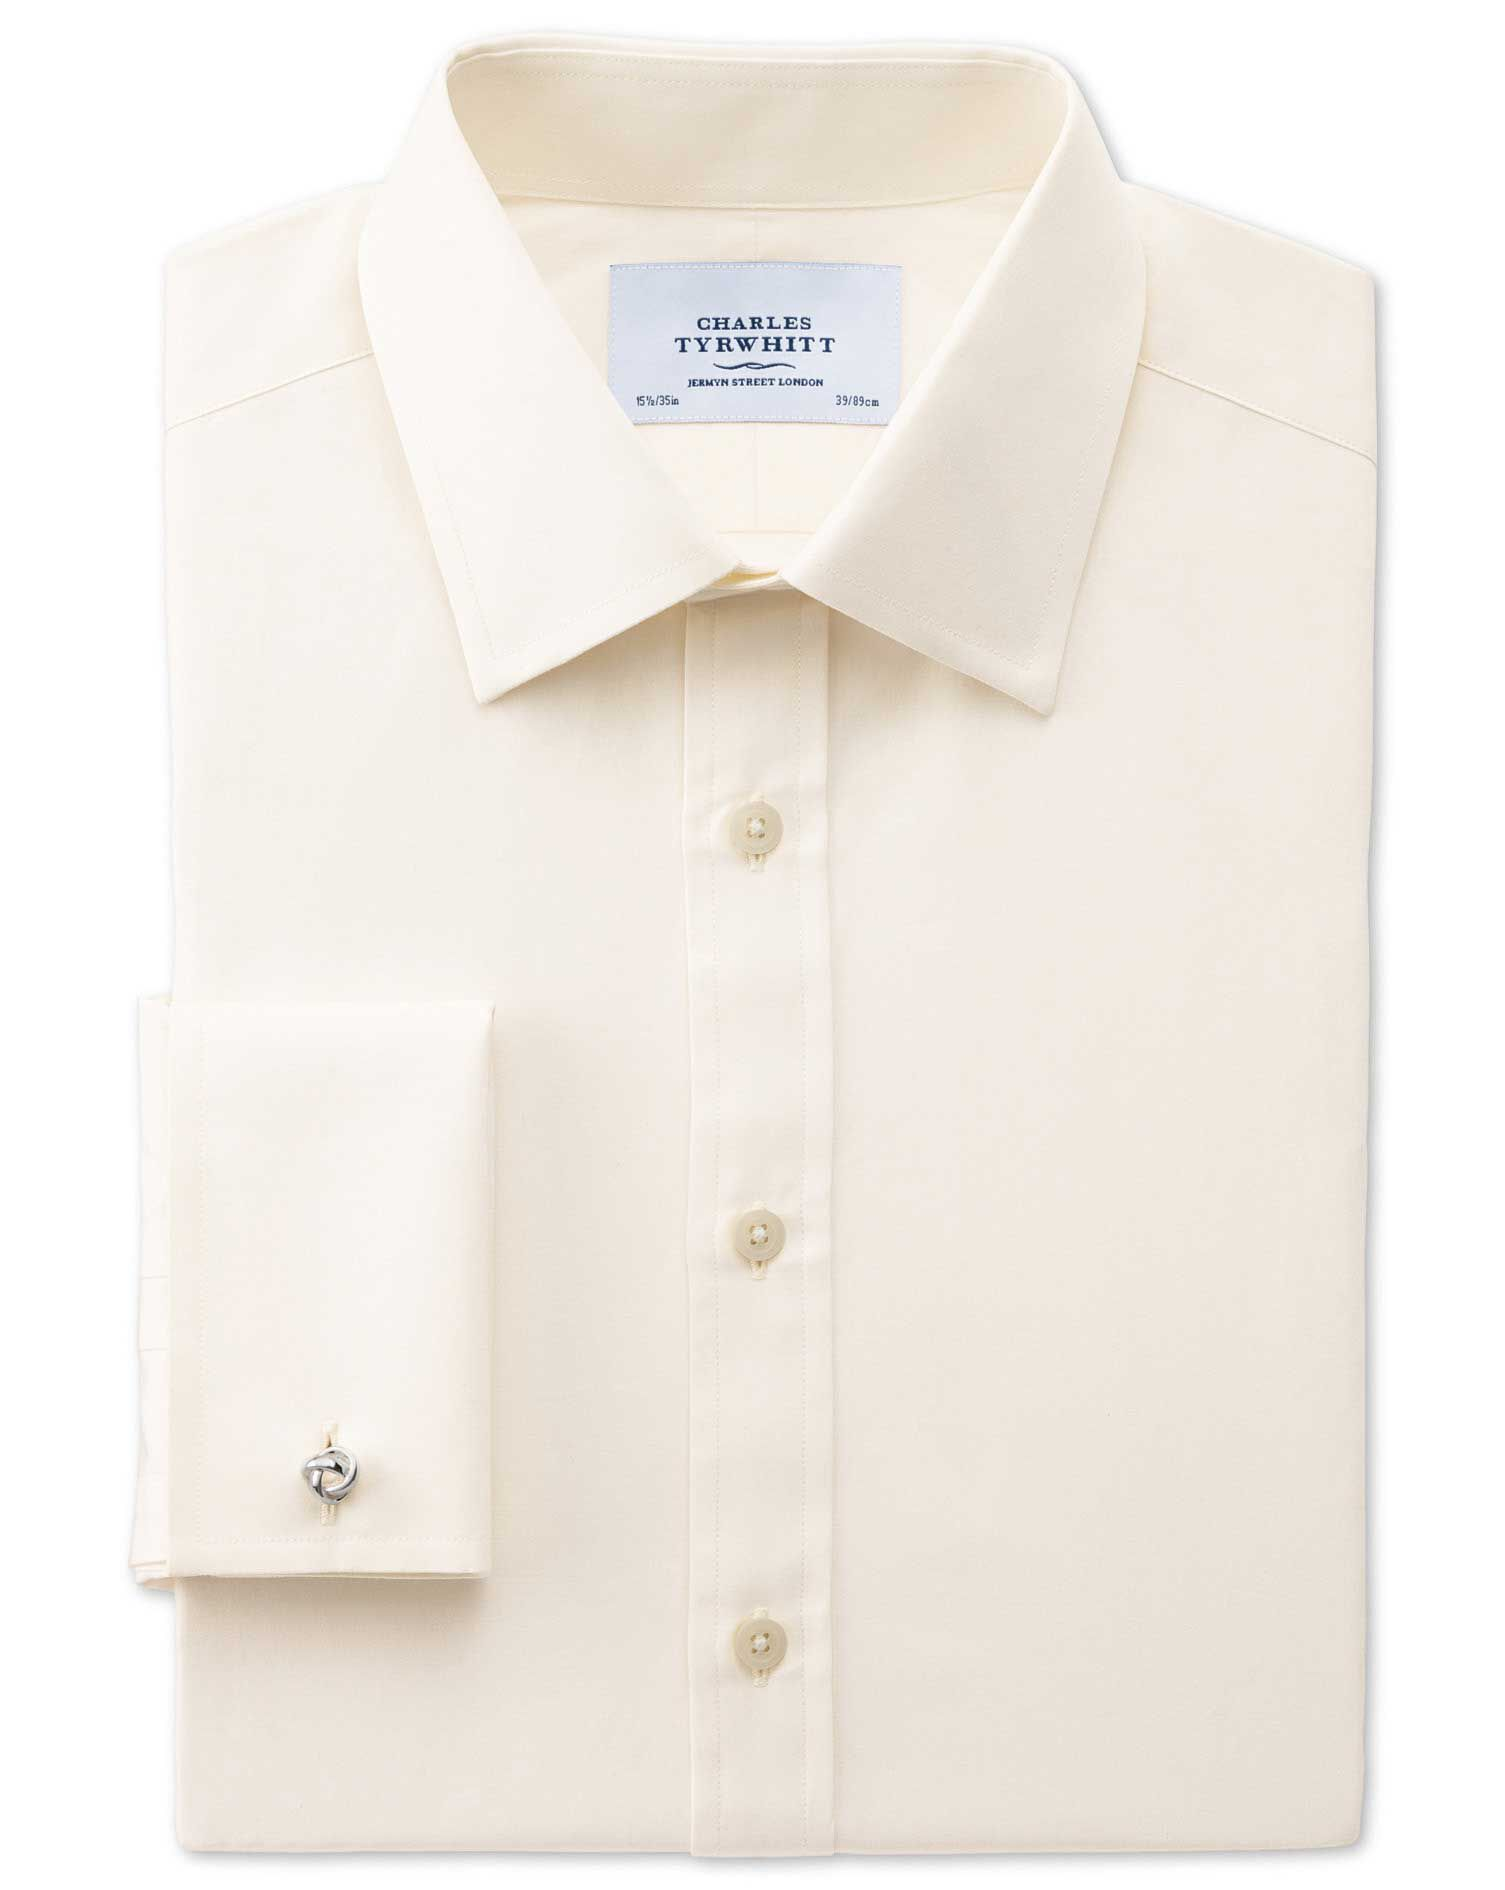 Classic Fit End-On-End Cream Cotton Formal Shirt Double Cuff Size 15.5/33 by Charles Tyrwhitt